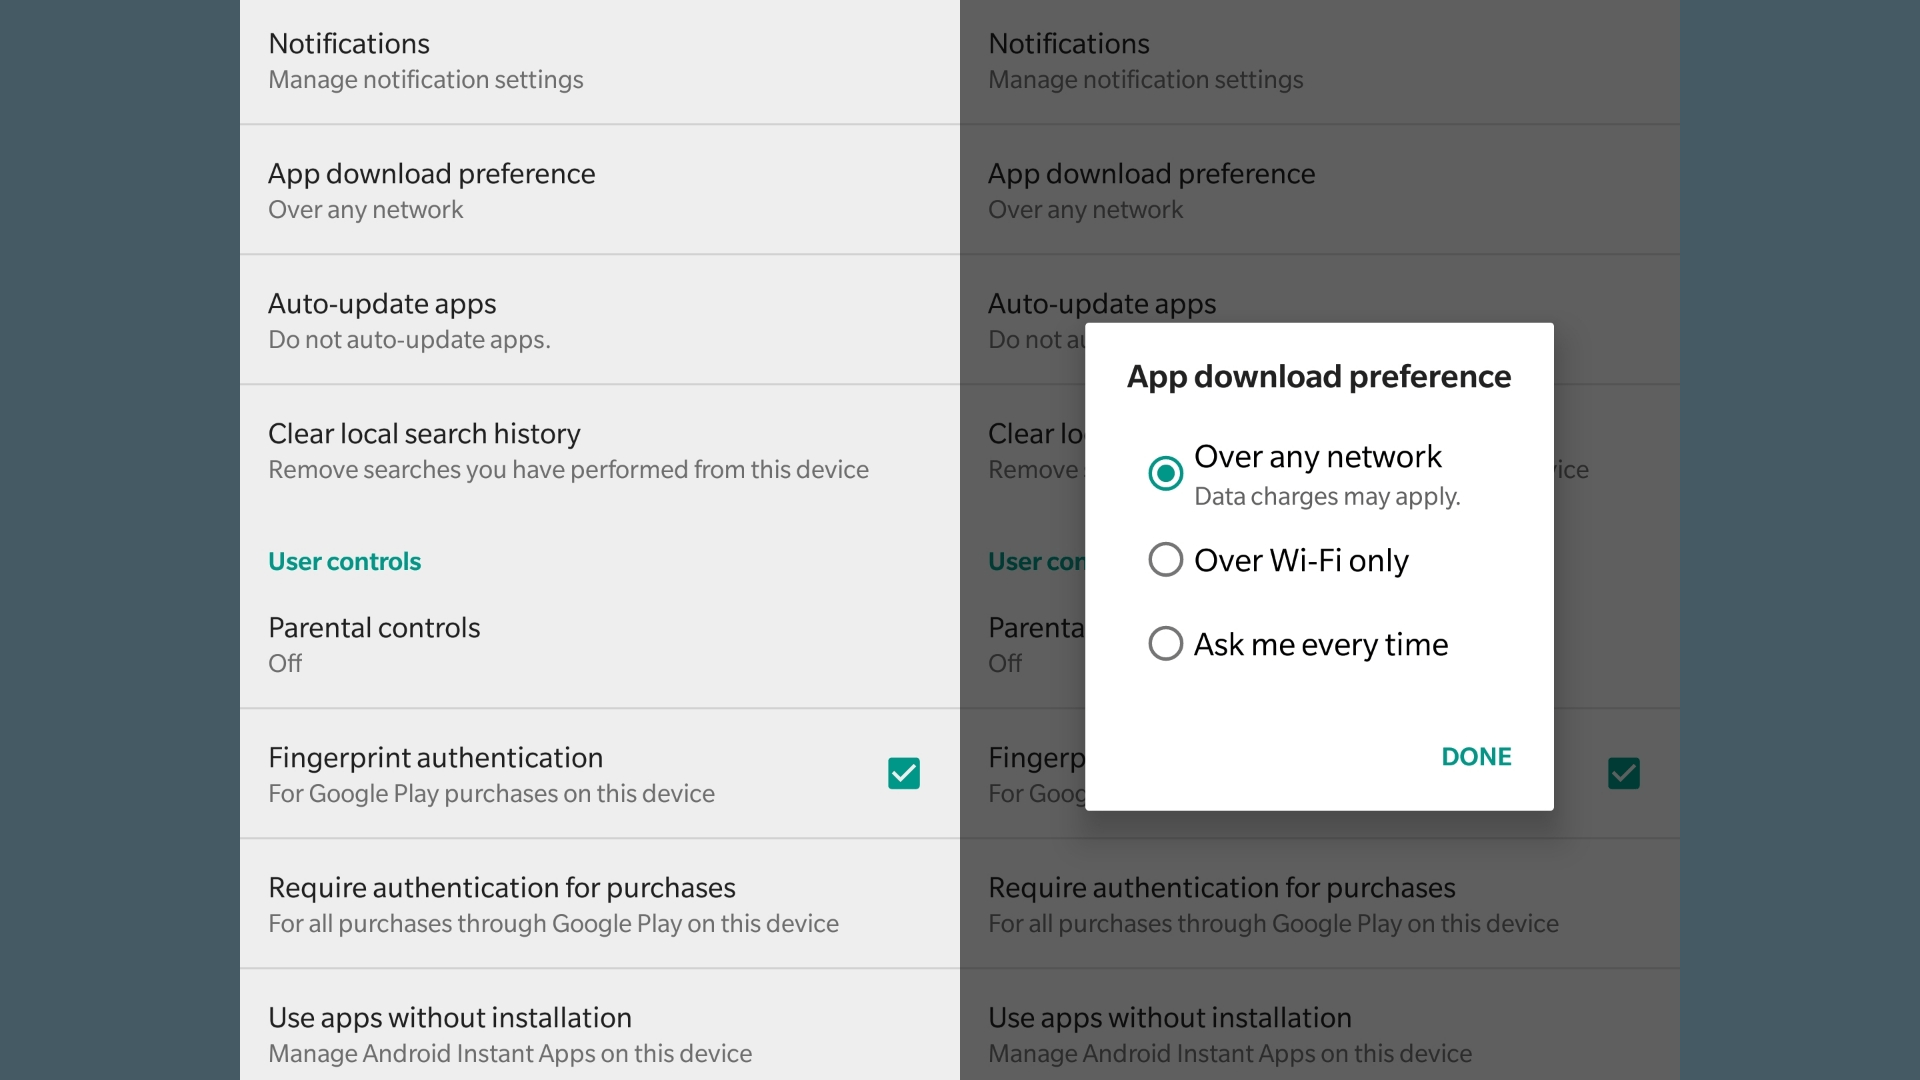 App Download Preference - Google Play Store